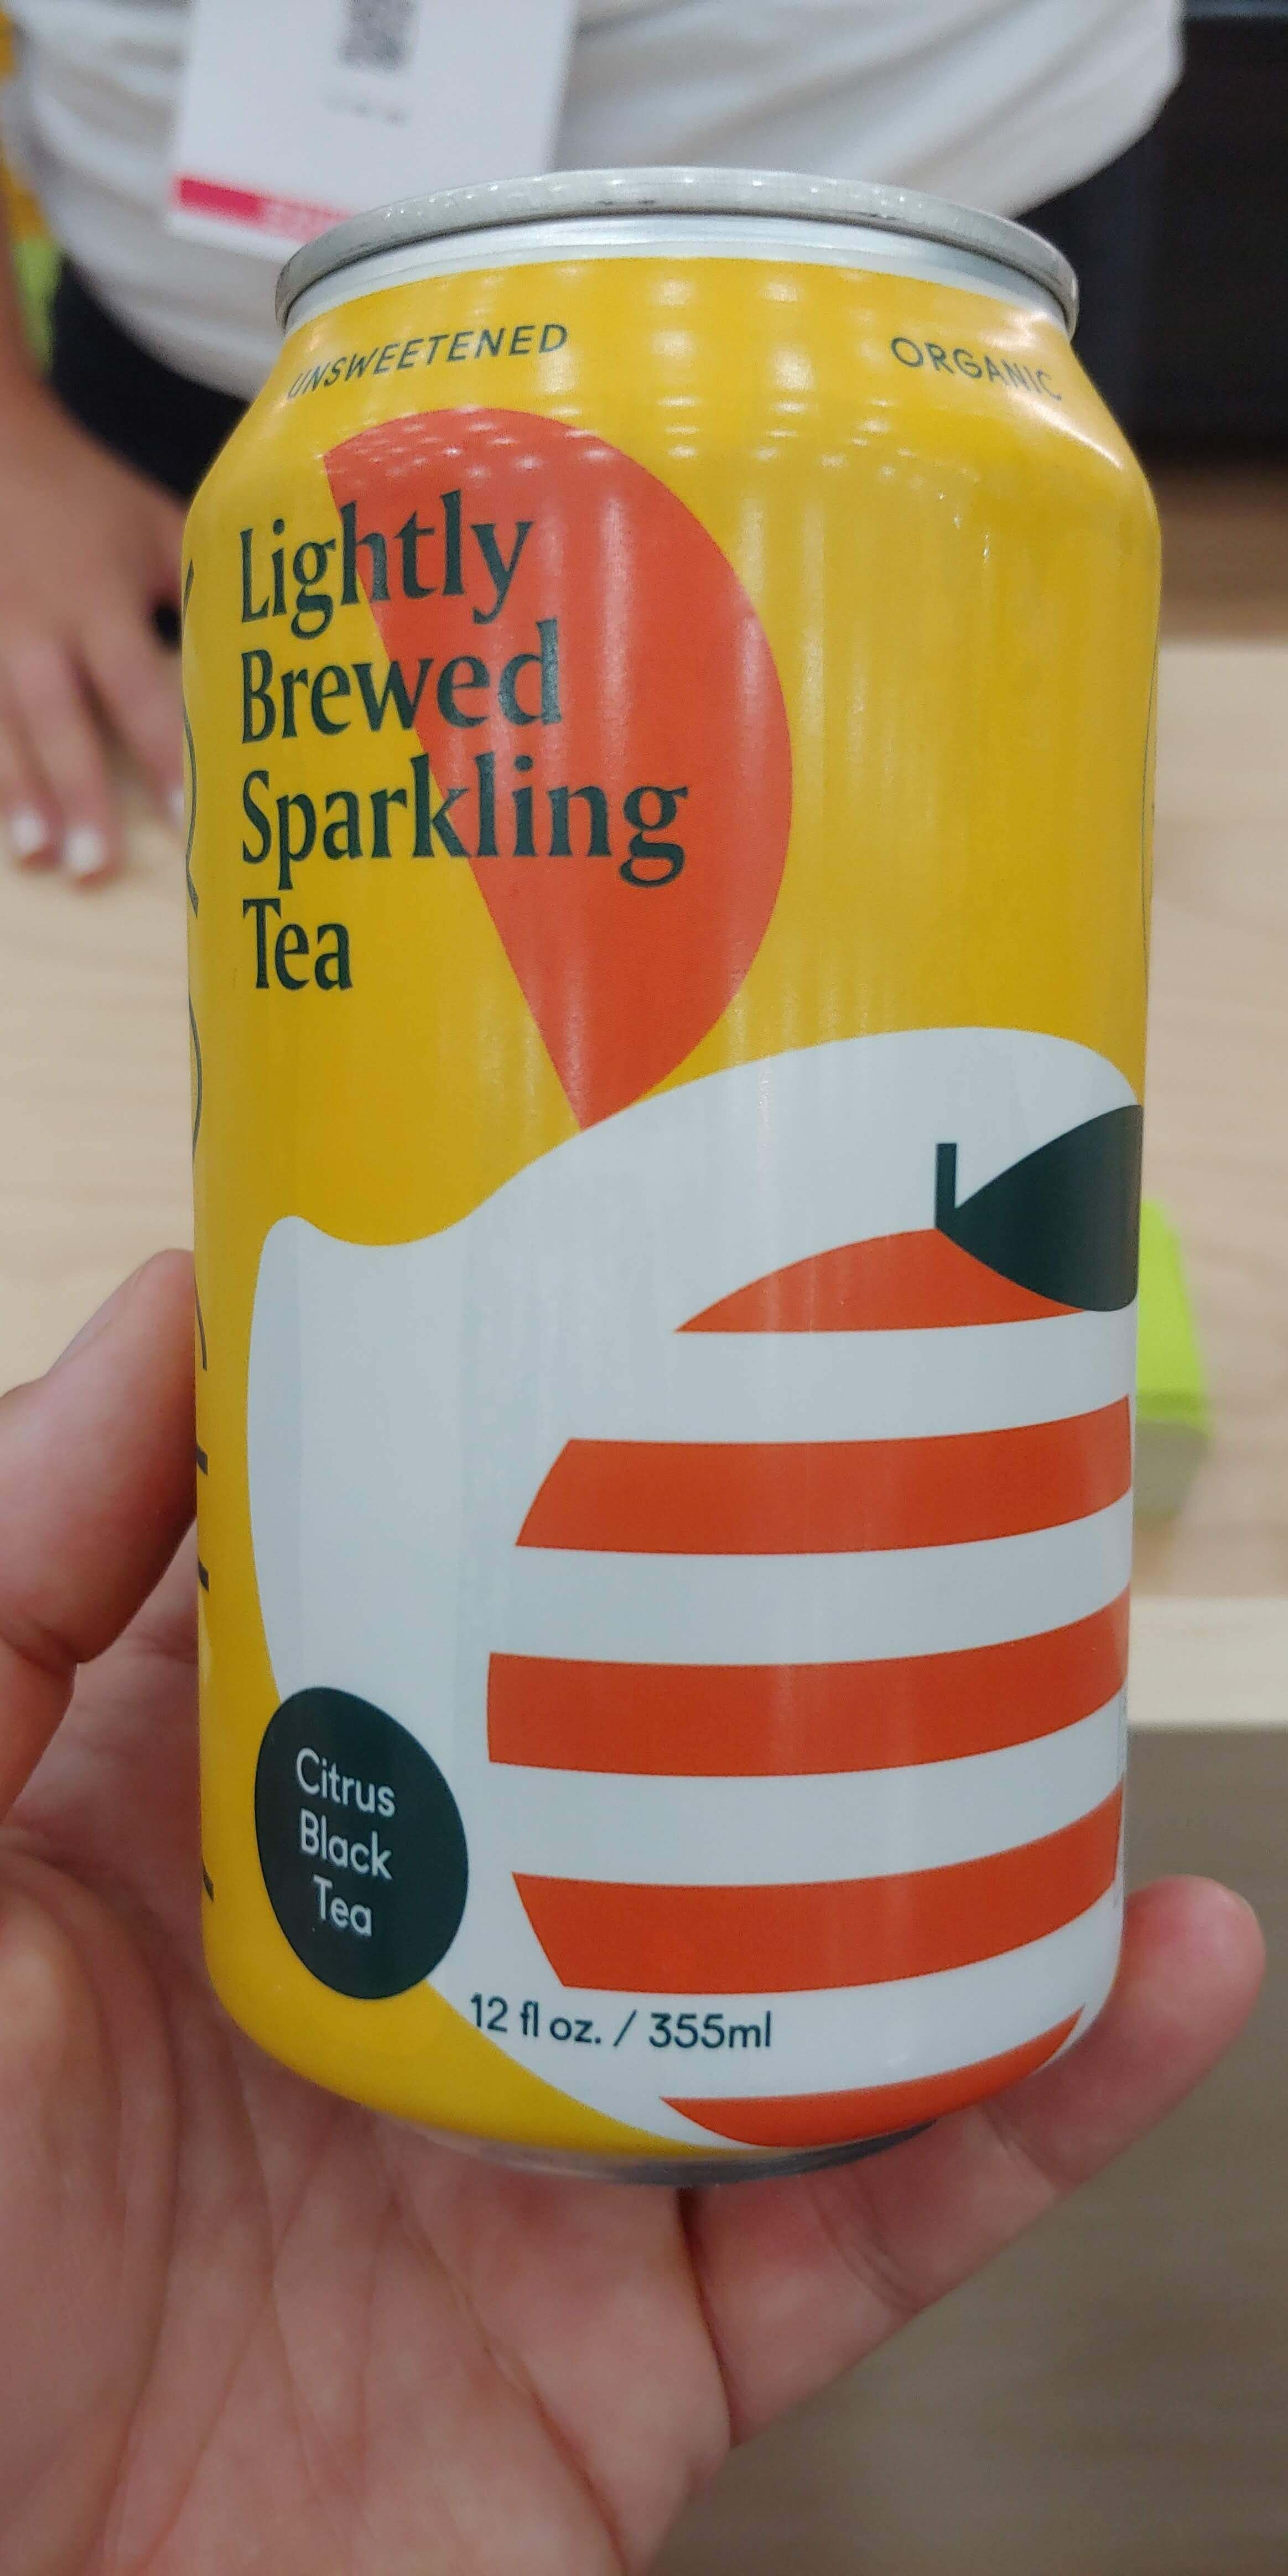 Loved these sparkling teas - no BPA